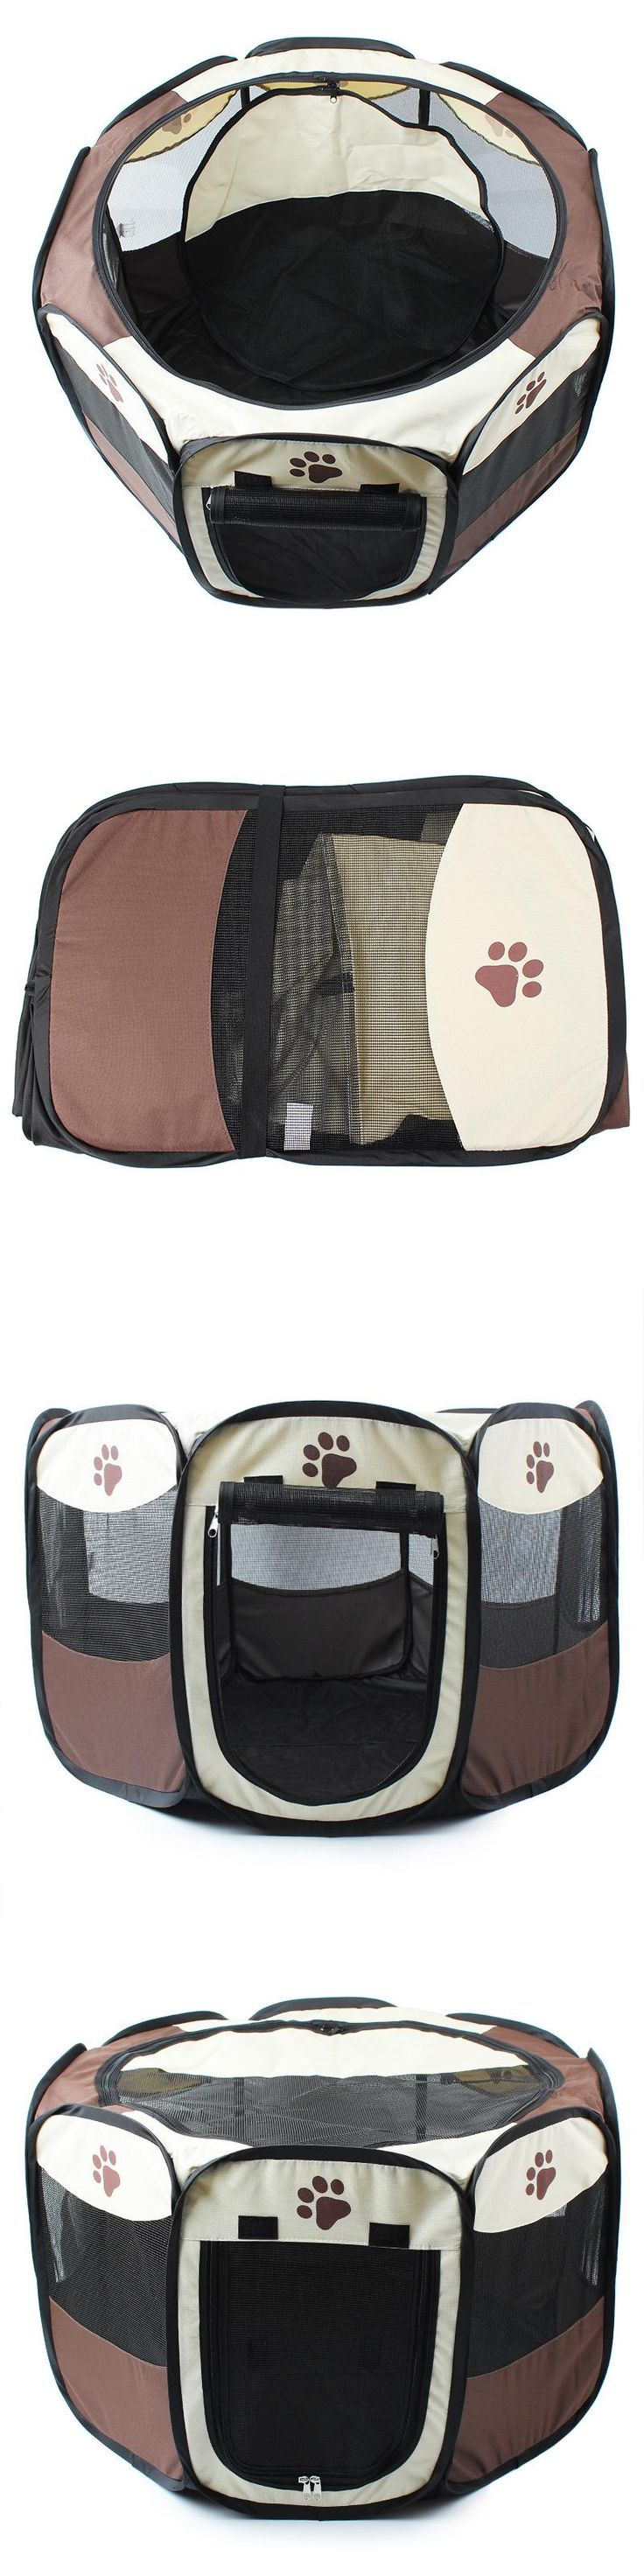 Pet Bed Pet Play Pen Puppy Rabbit Cage, Large,octagonal collapsible for Big Pet